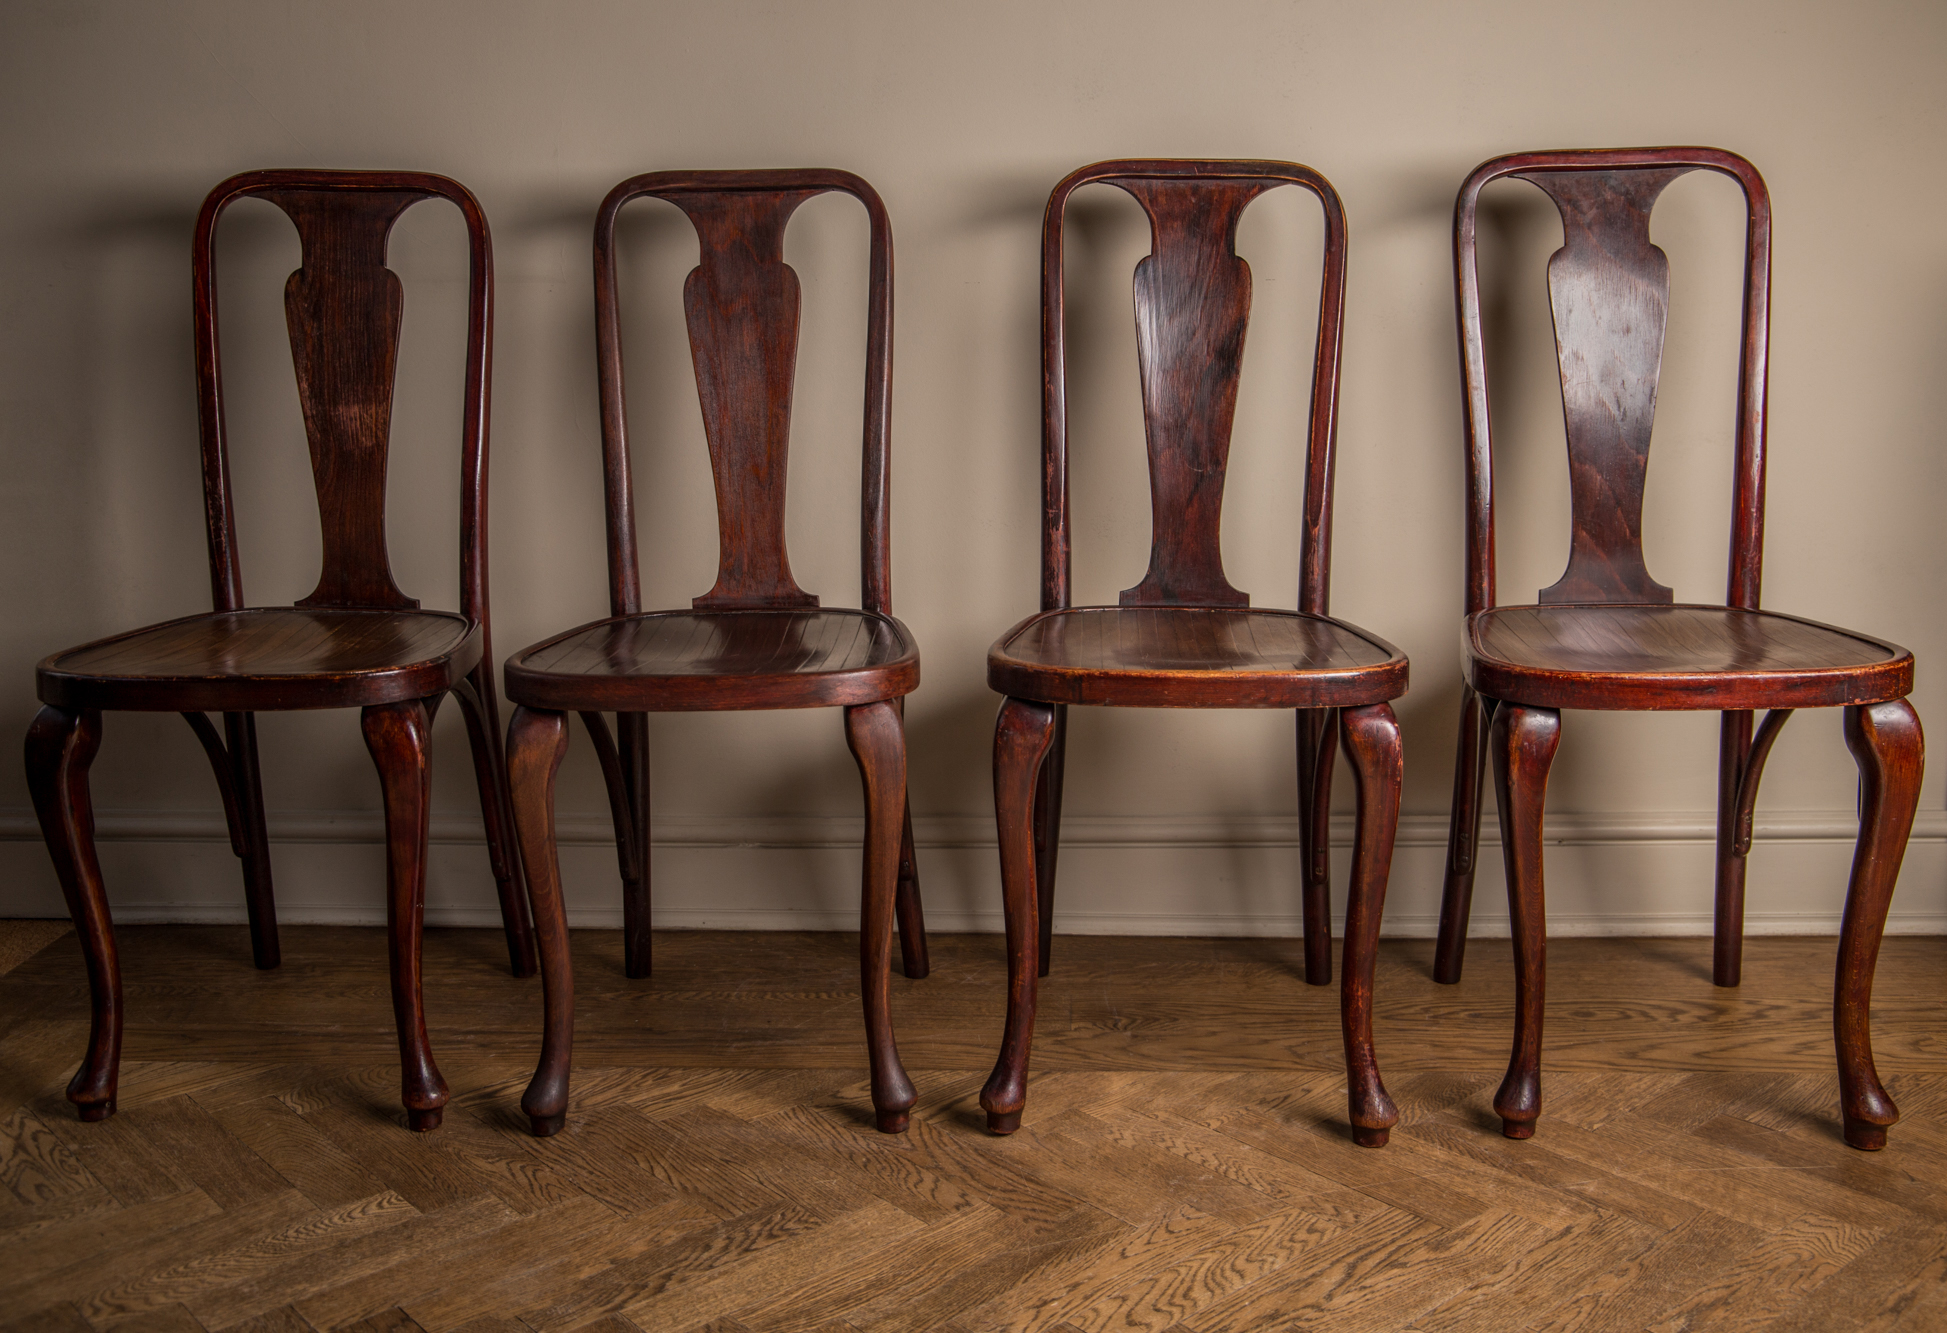 Art Deco Dining Chairs A Set Of 4 Rare Splat Back Art Deco Thonet Dining Chairs